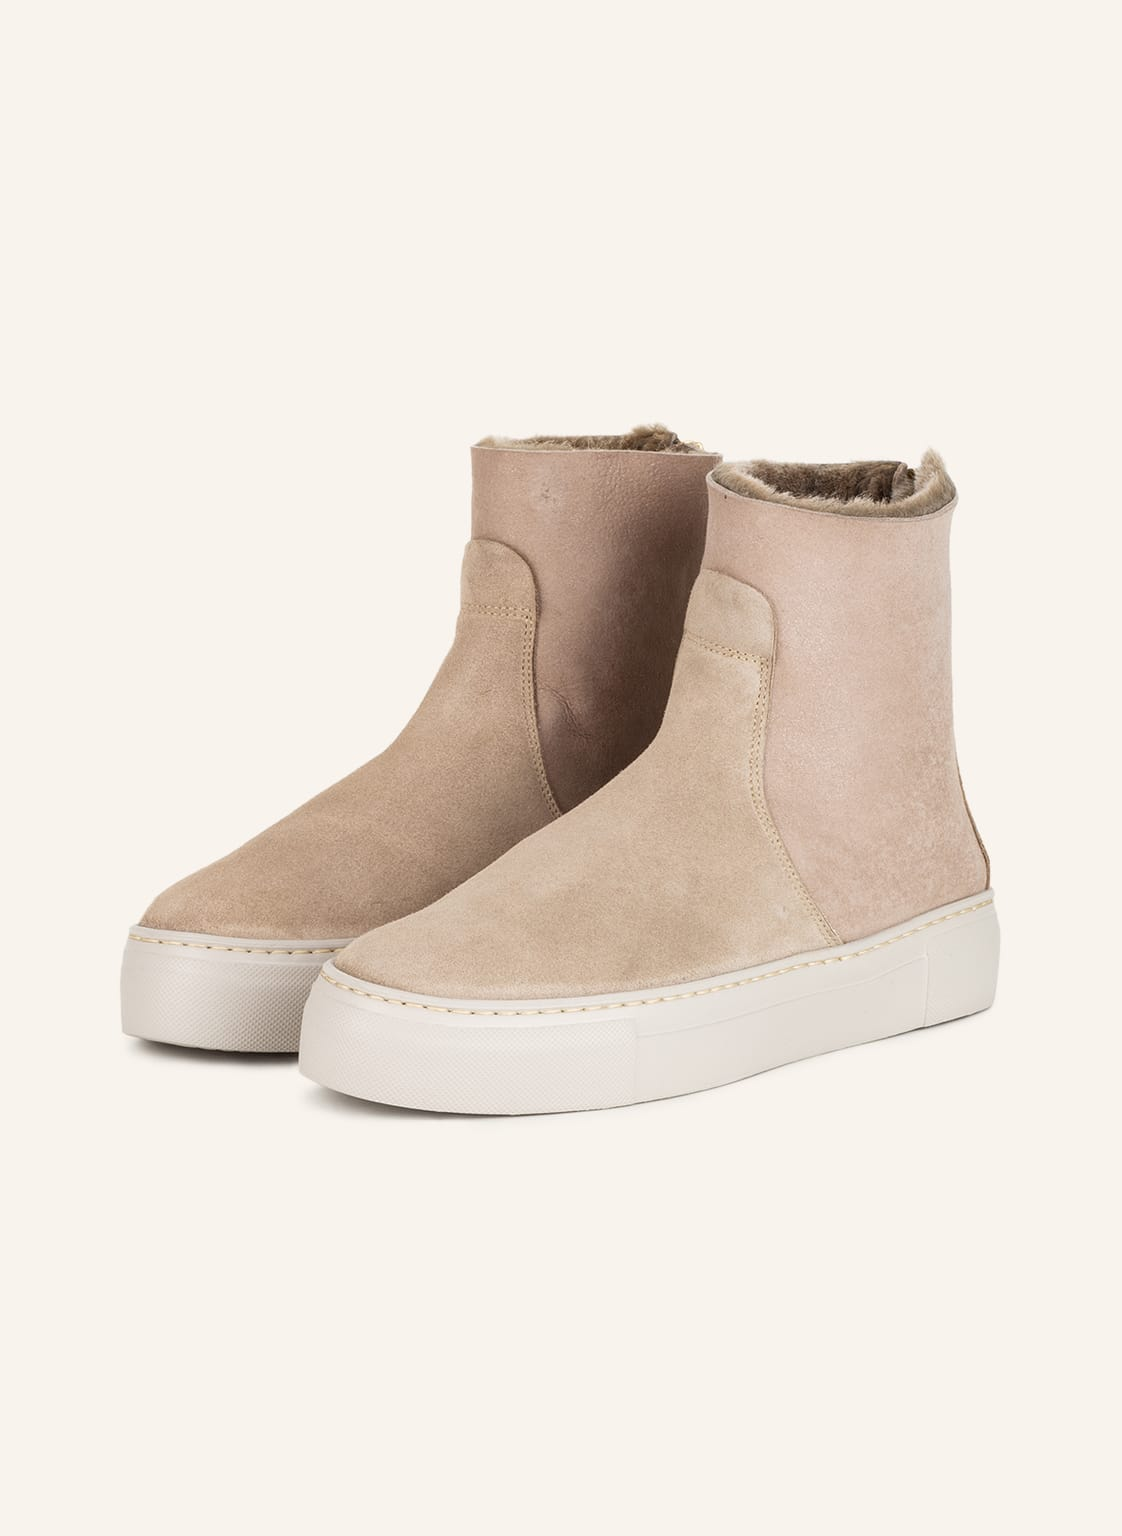 Image of Agl Boots beige